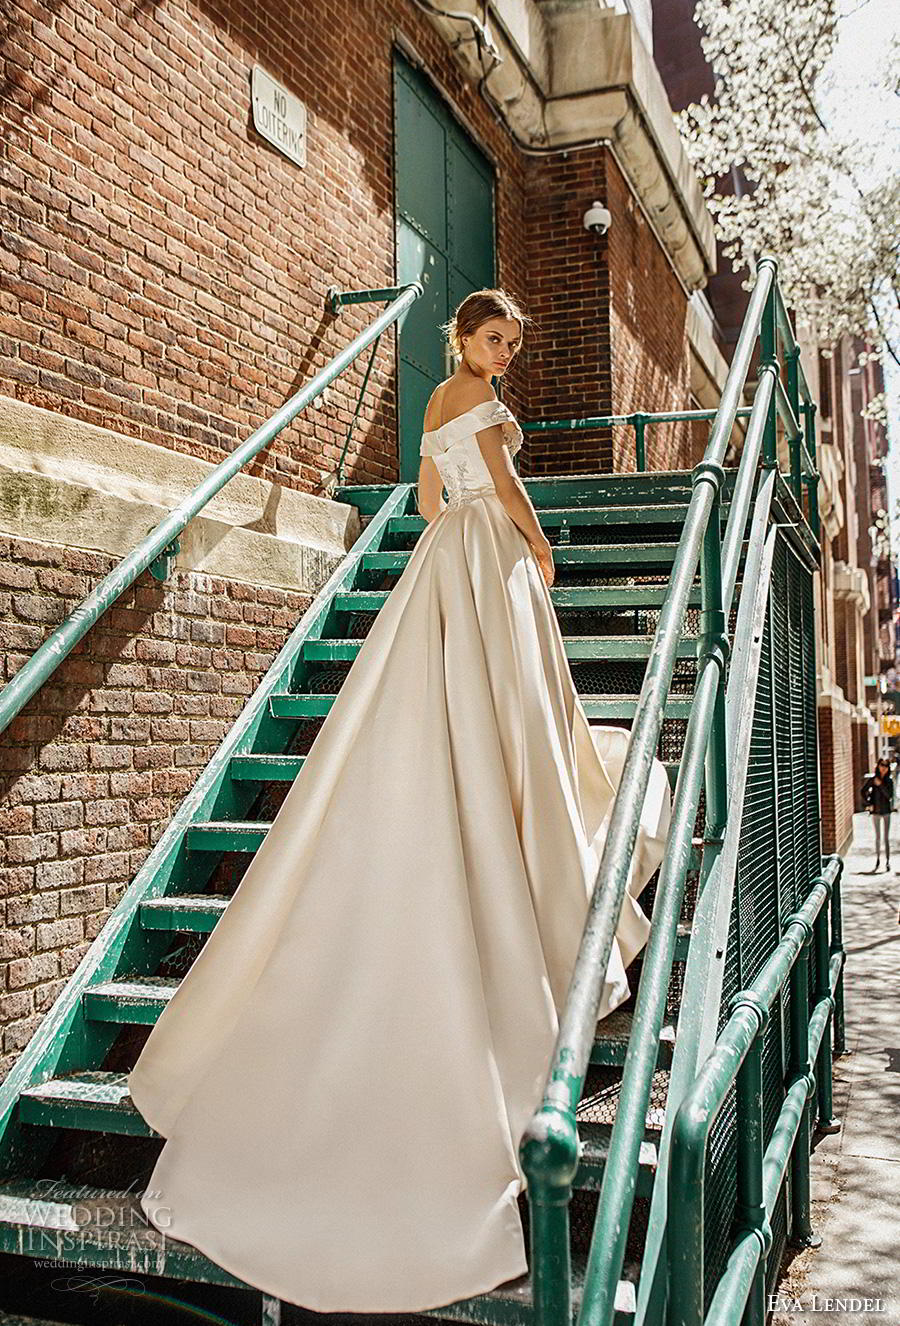 eva lendel 2019 bridal off the shoulder v neck heavily embellished bodice satin skirt princess ball gown a  line wedding dress chapel train (10) bv